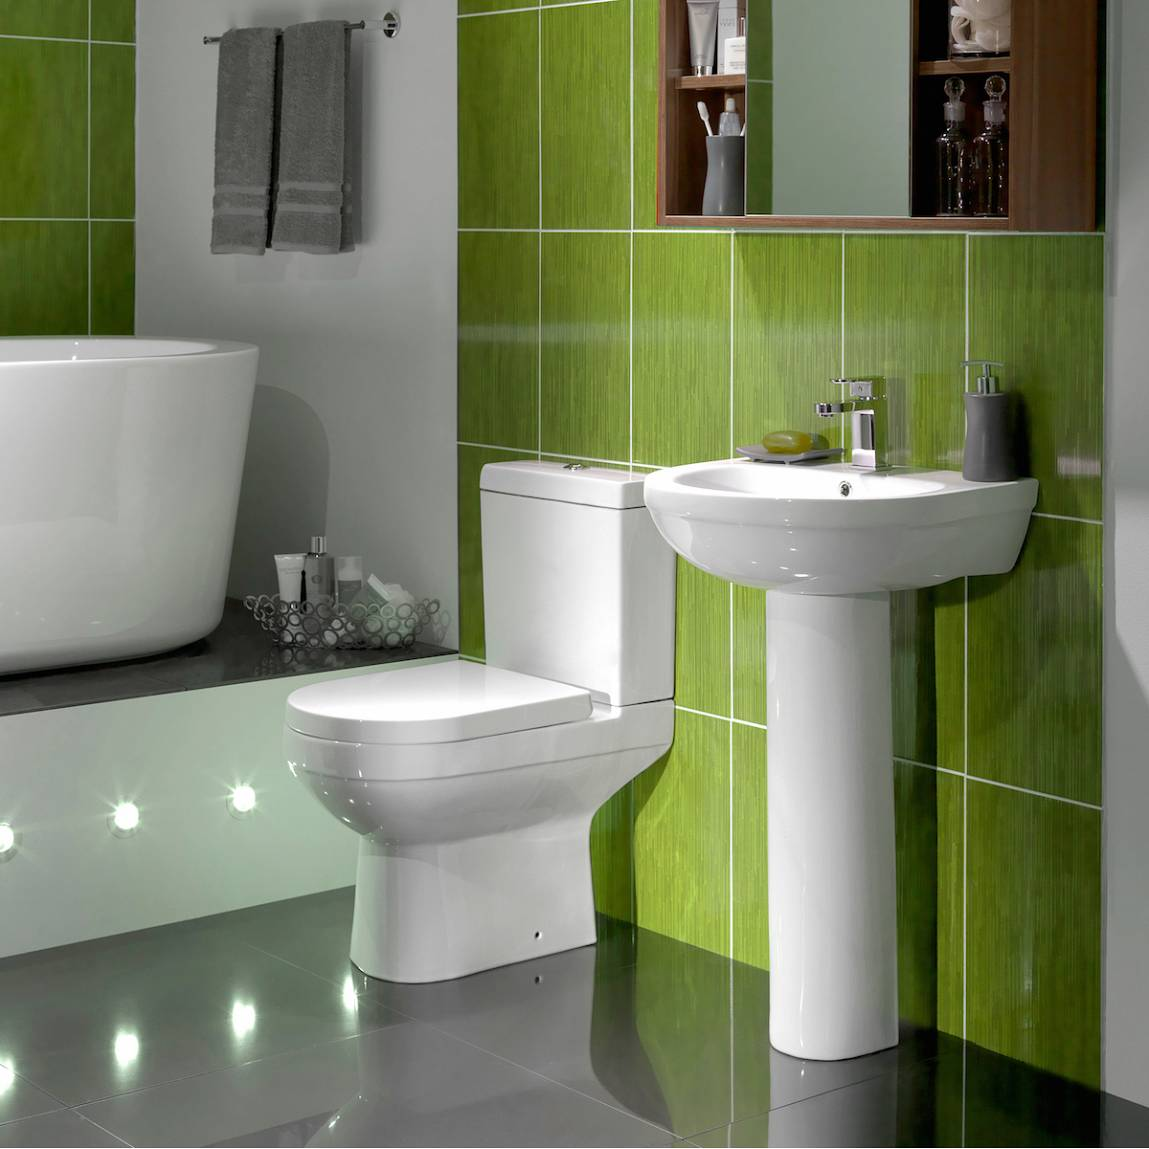 Image of Balance Toilet and basin Suite